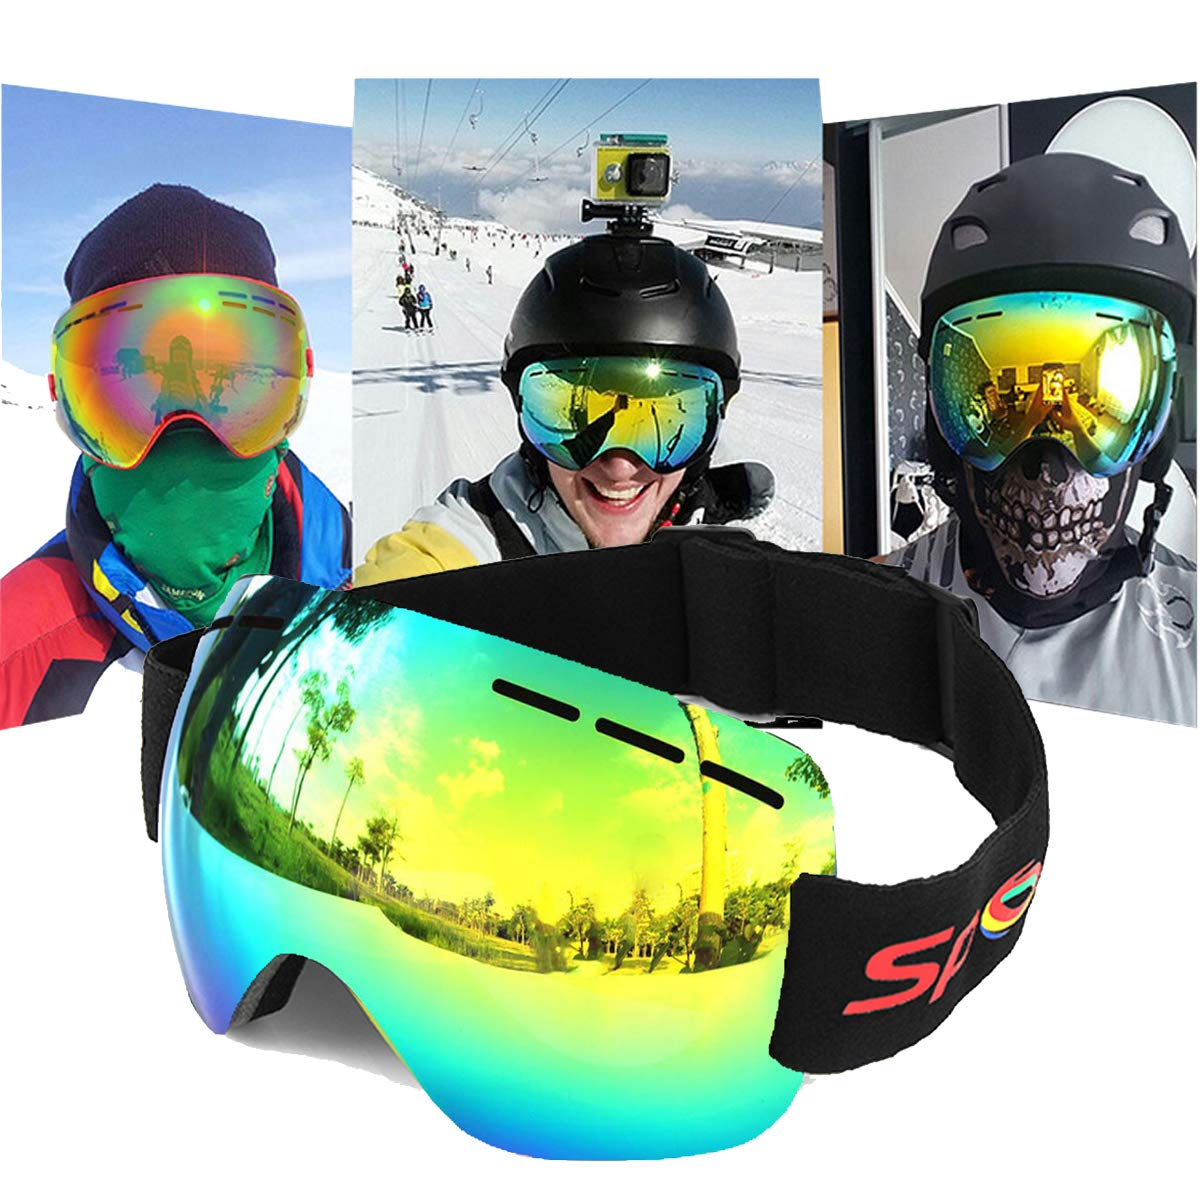 94f3a277b595 Amazon.com  LoiLee Motorcycle Goggles Anti-Fog UV Skiing Snowboard Racing Sunglasses  Snow Mirror Glasses  Sports   Outdoors